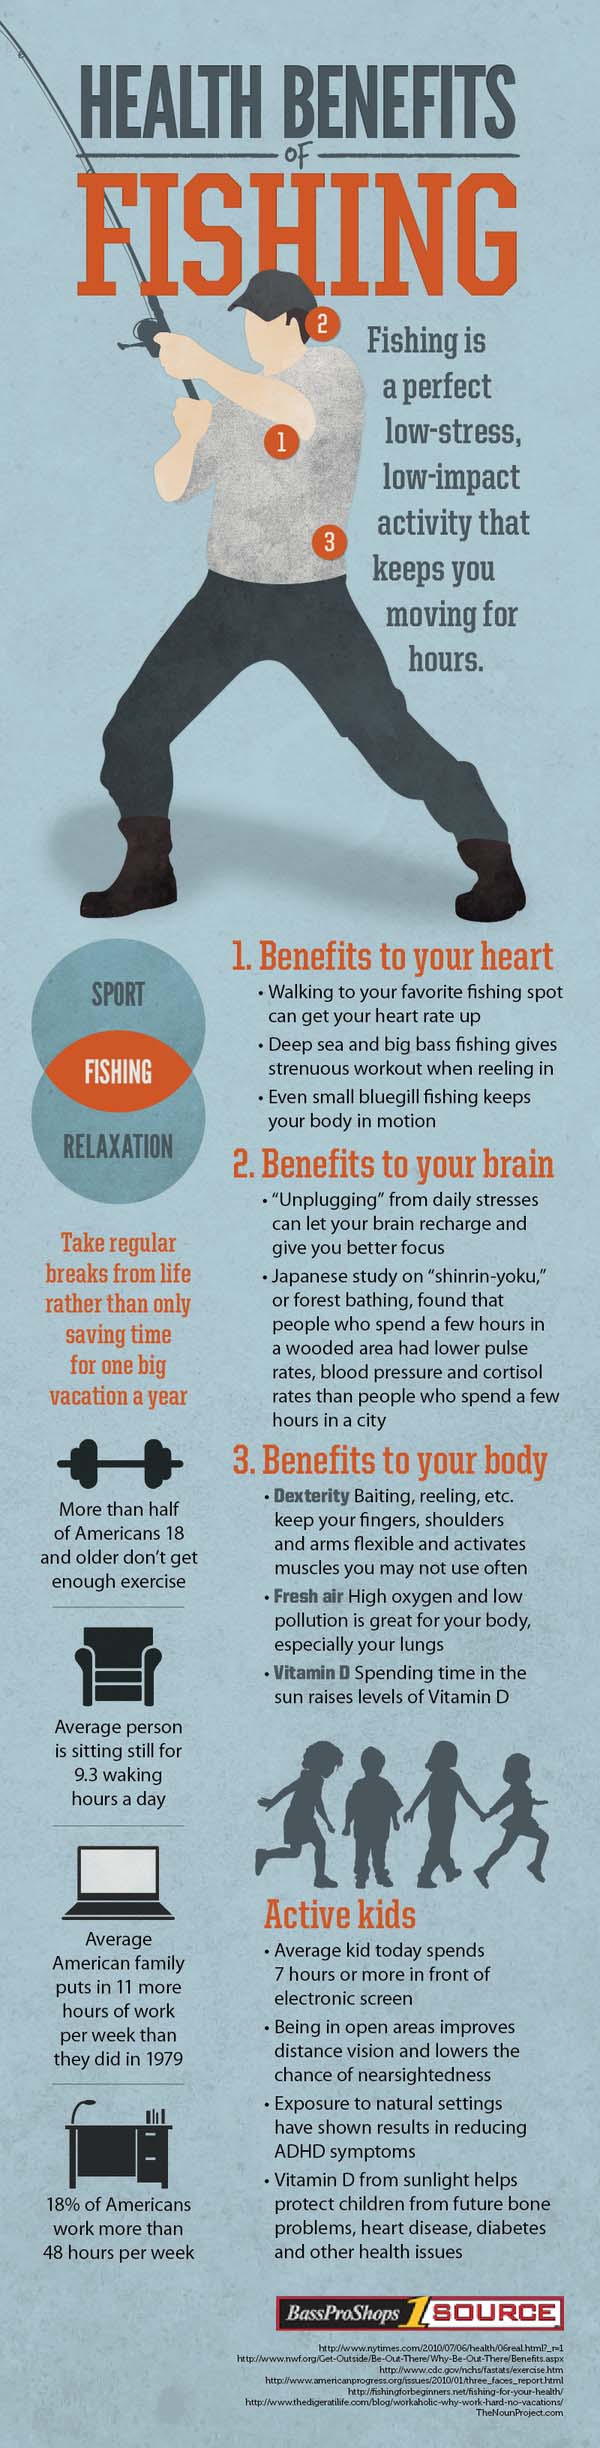 Freshwater fish health benefits - As If You Needed Another Reason To Get Out On The Water And Fish Here Are Some Health Benefits Of Fishing Whether You Are On The River The Lake